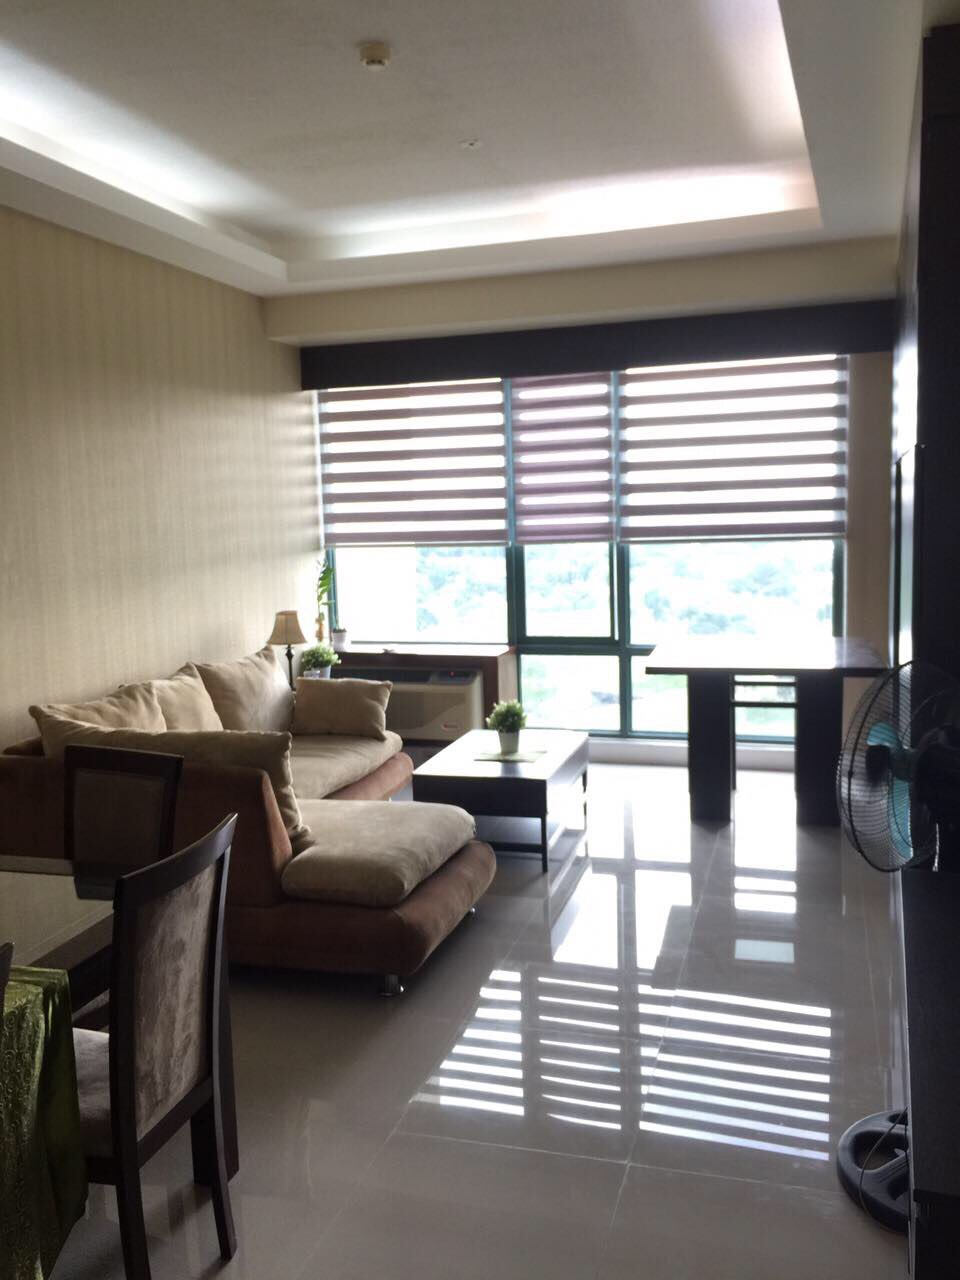 2 Bedroom Condo For Rent In Bgc Taguig City Bellagio Tower 1 11th Floor Fully